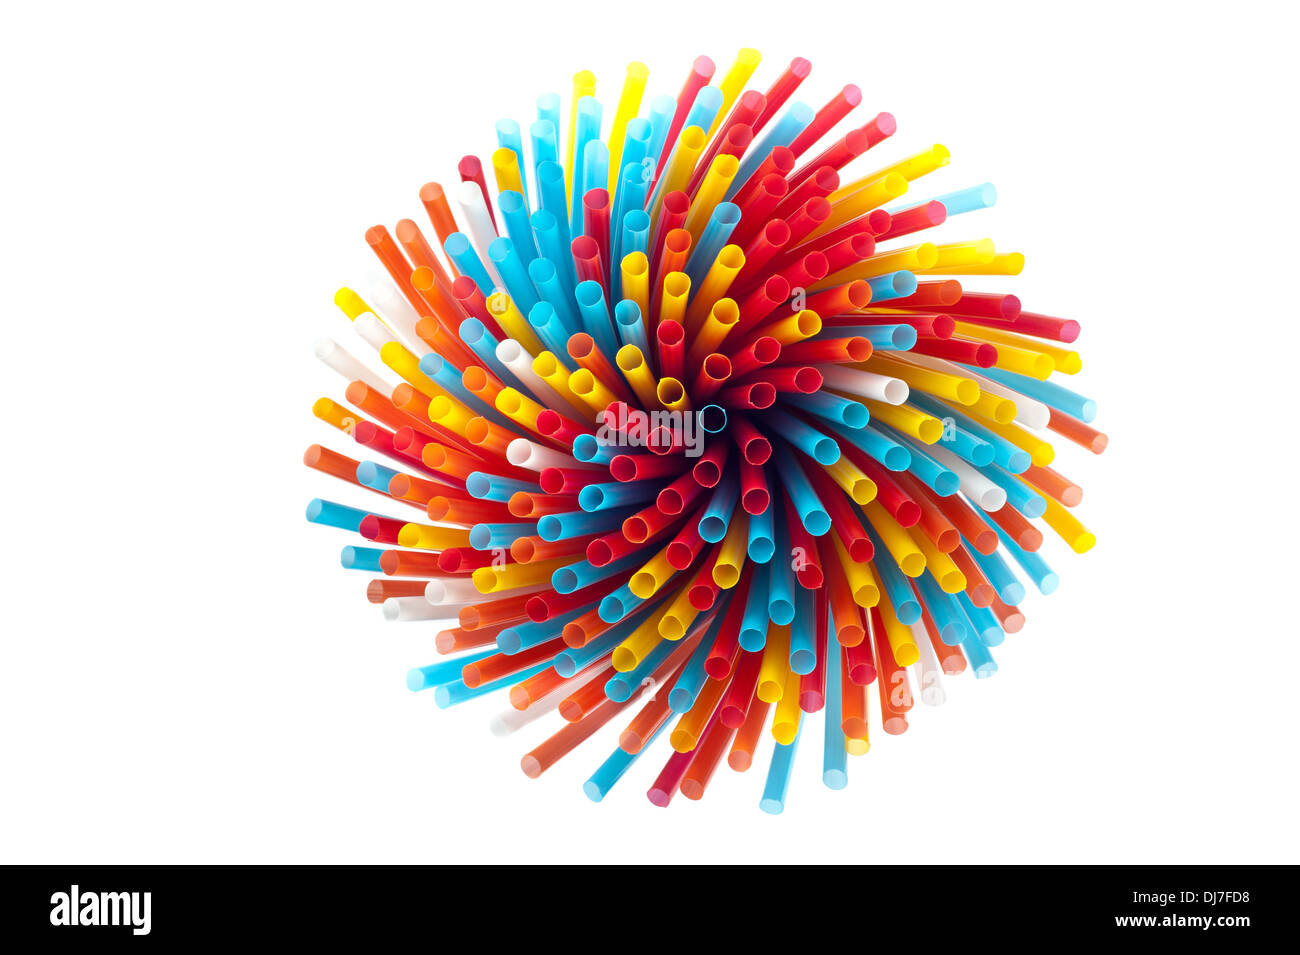 Closeup of drinking straws on white background - Stock Image